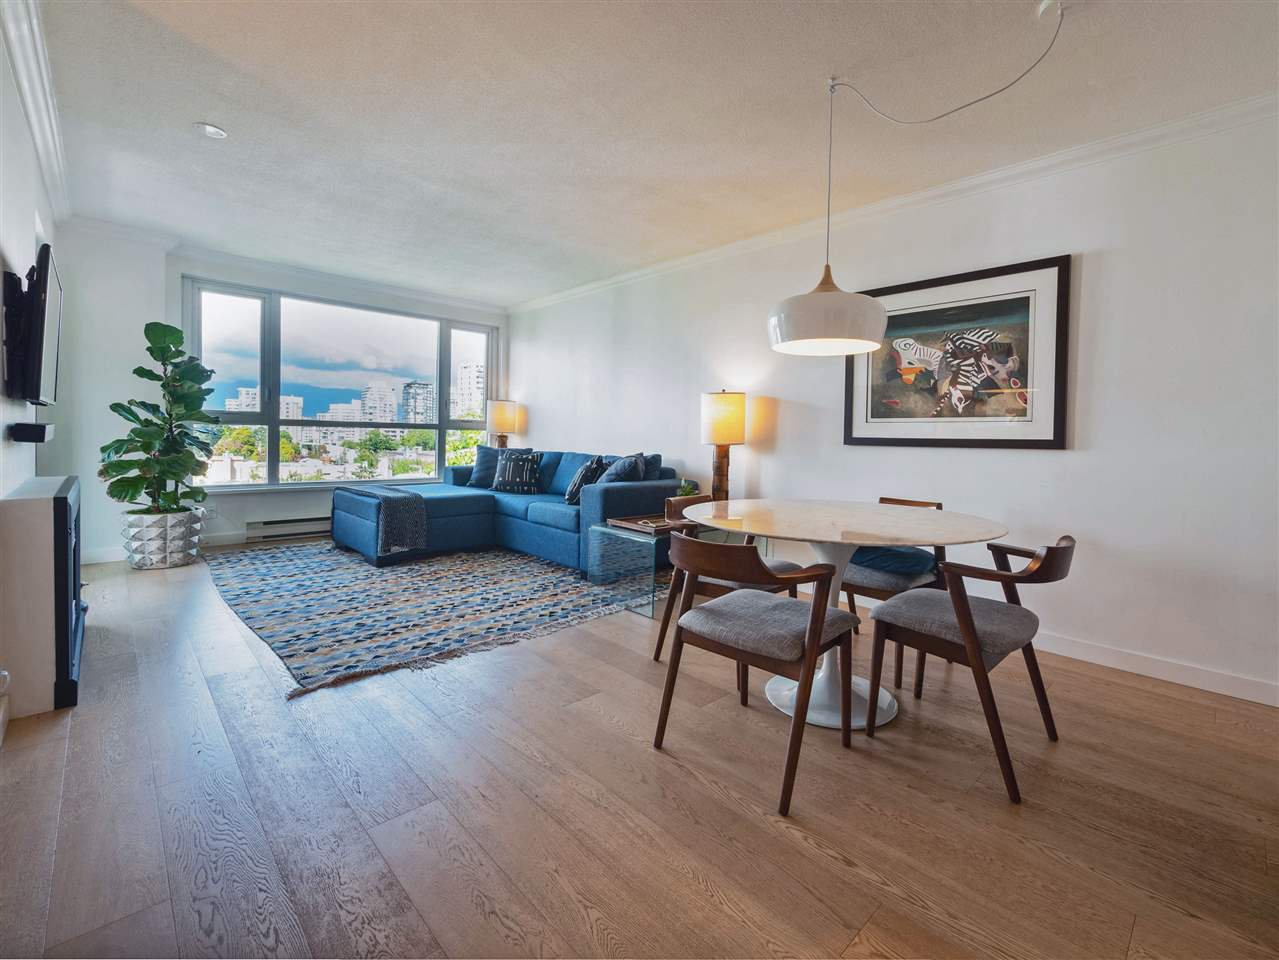 Main Photo: 804 1838 NELSON STREET in Vancouver: West End VW Condo for sale (Vancouver West)  : MLS®# R2473564